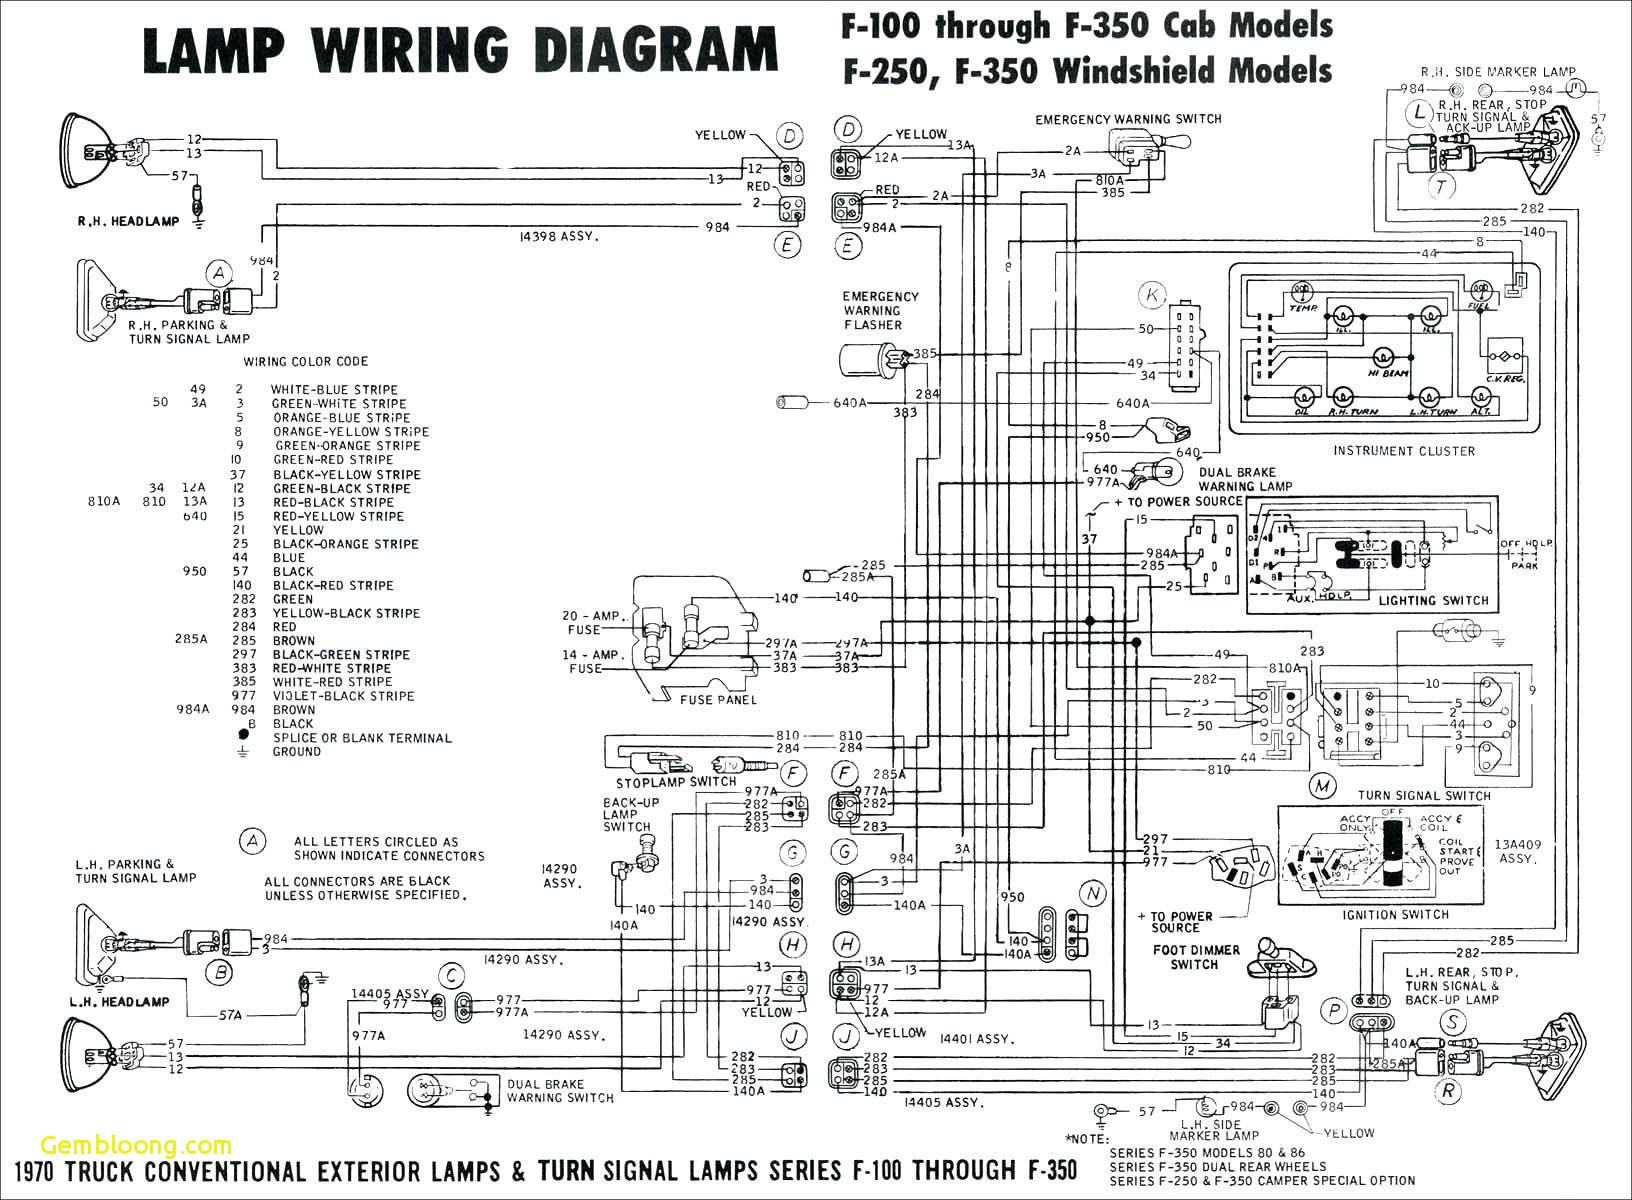 Engine Run Stand Wiring Diagram Free ford Trucks Wiring Diagrams ford Wiring Diagrams Free Free Of Engine Run Stand Wiring Diagram